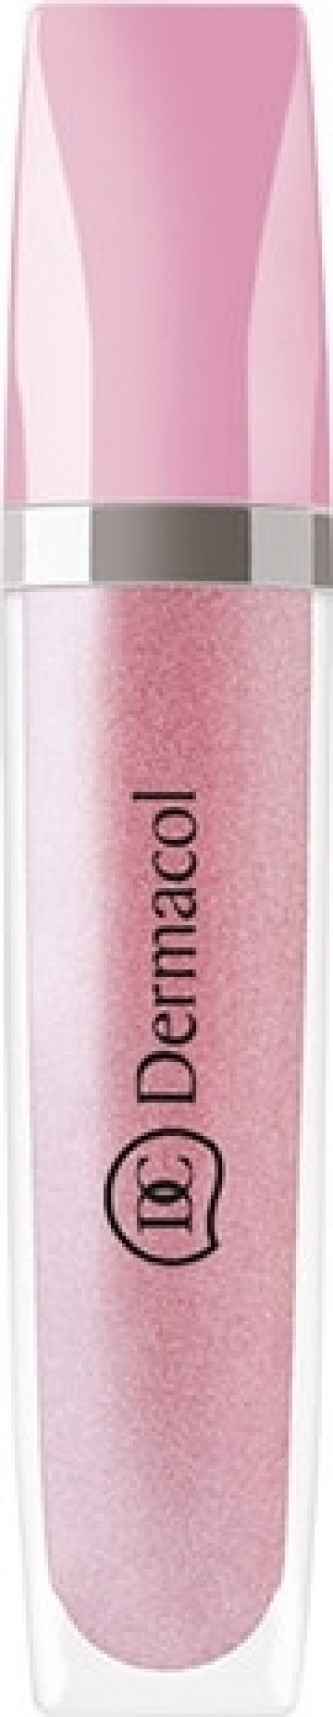 Dermacol Shimmering Lip Gloss 8 ml 4